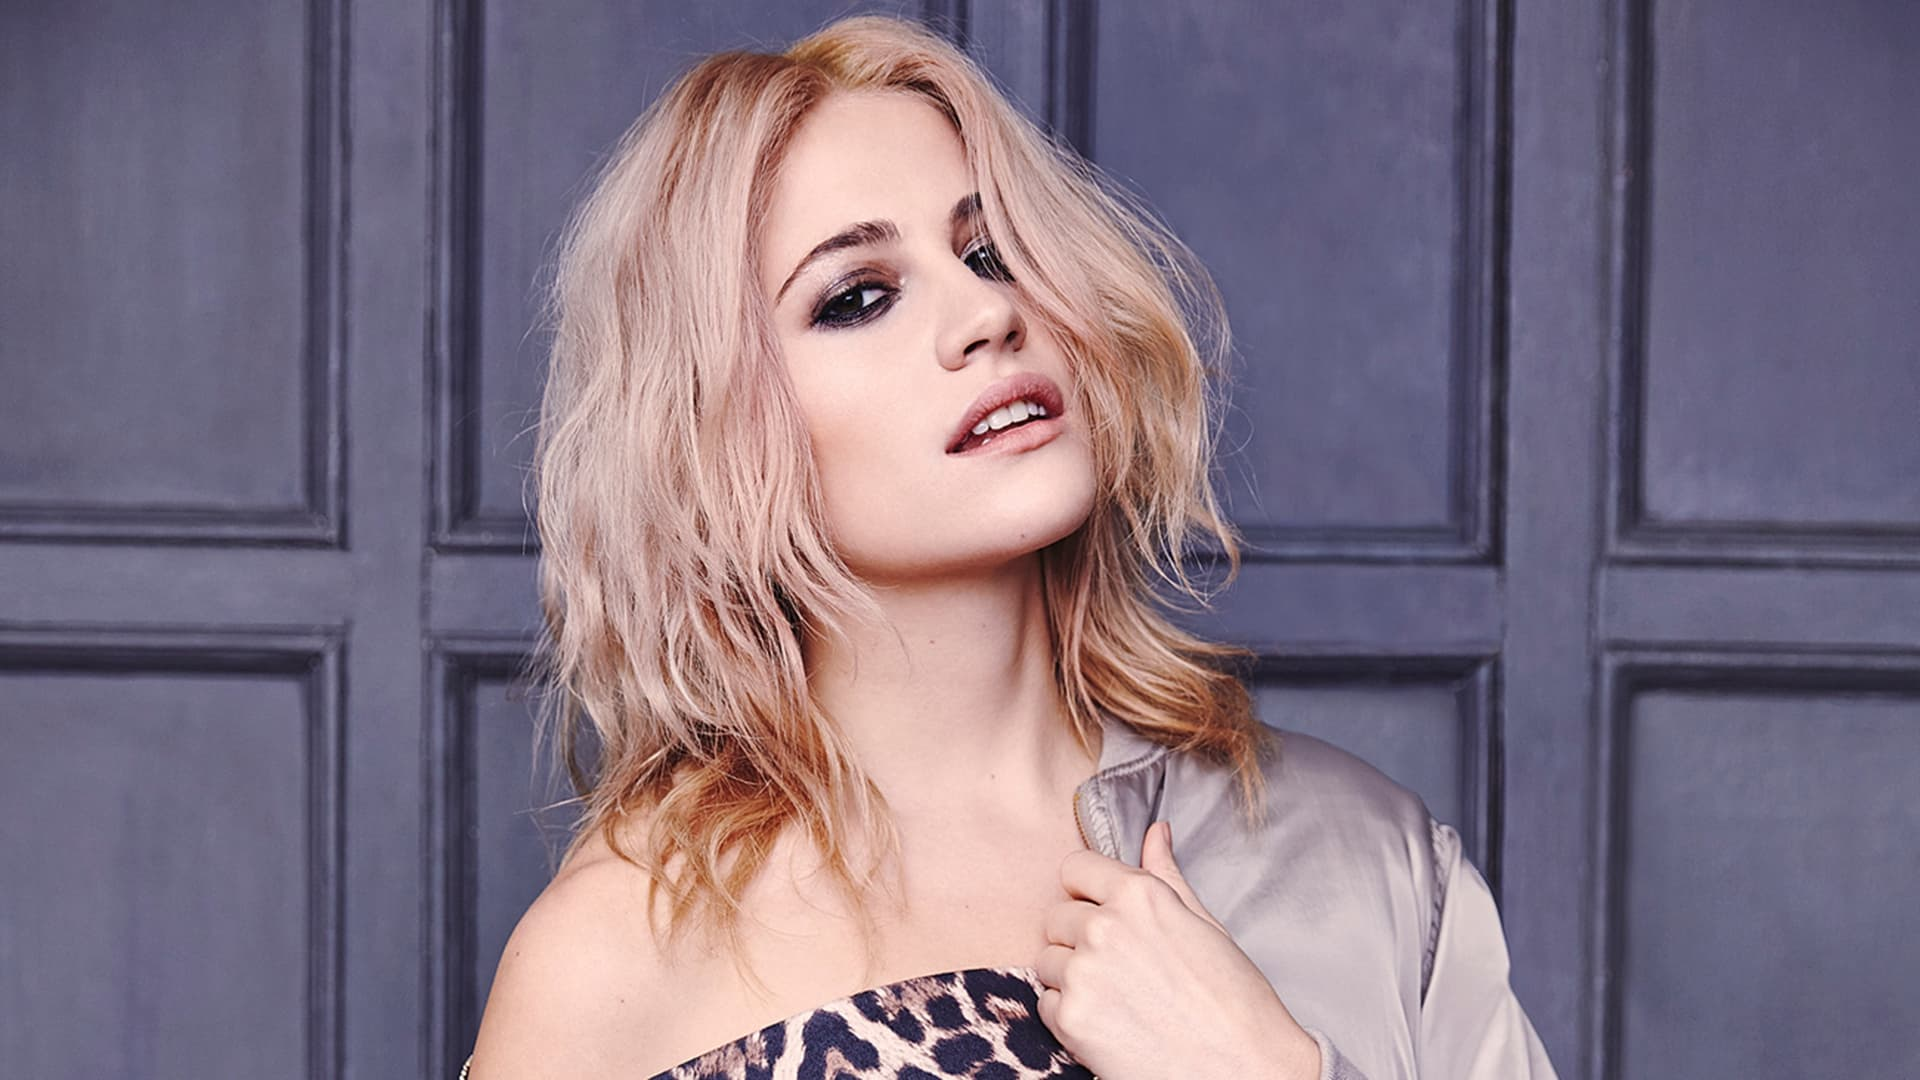 Wallpaper face Pixie Lott 1080p